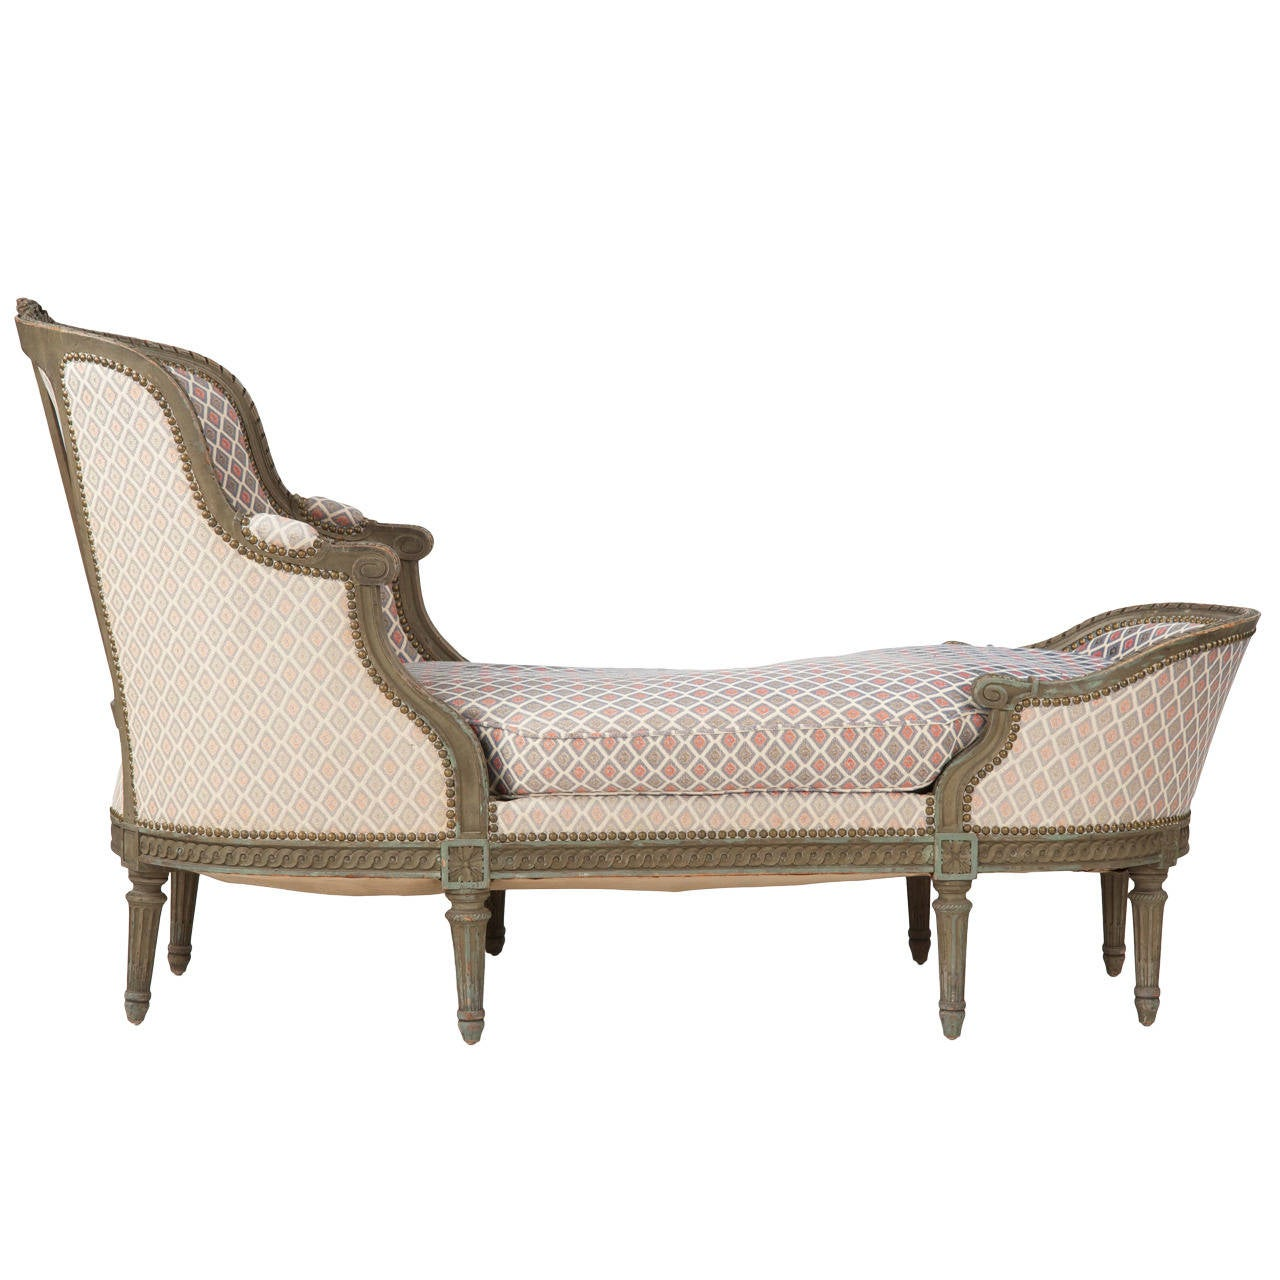 French louis xvi style painted antique chaise lounge for Chaise lounge com